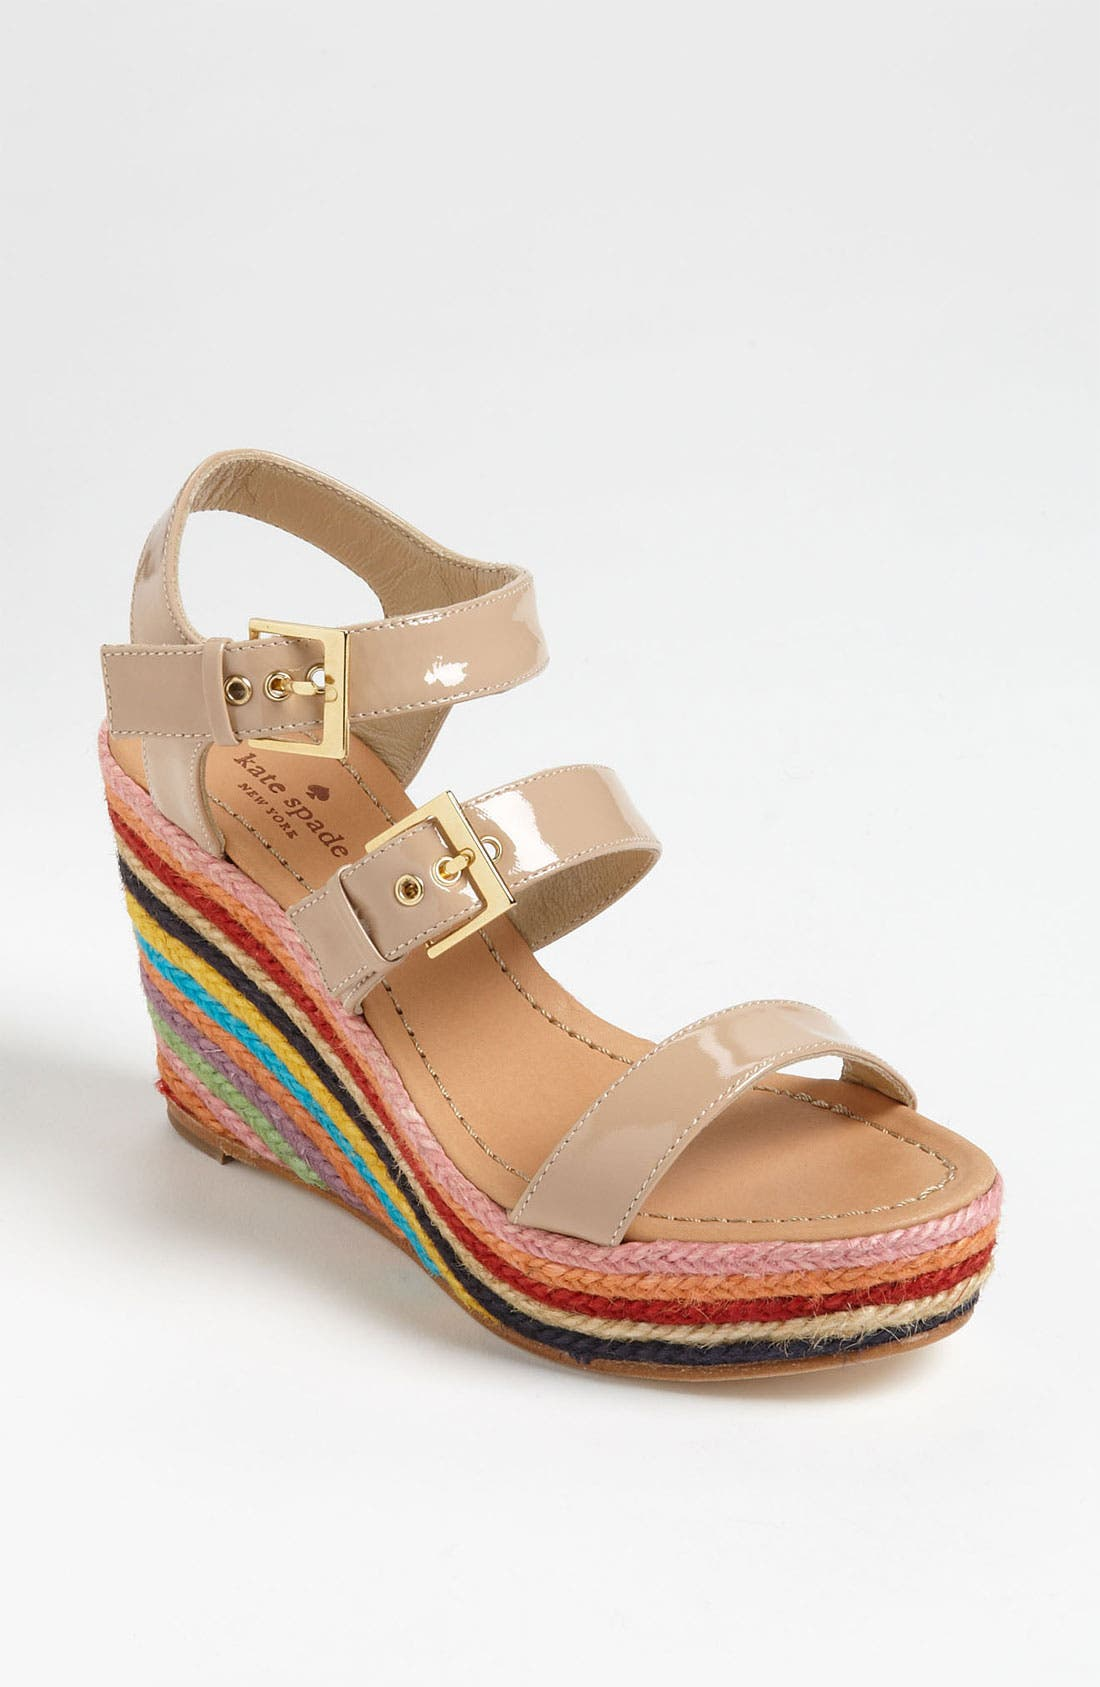 Main Image - kate spade new york 'darla' sandal